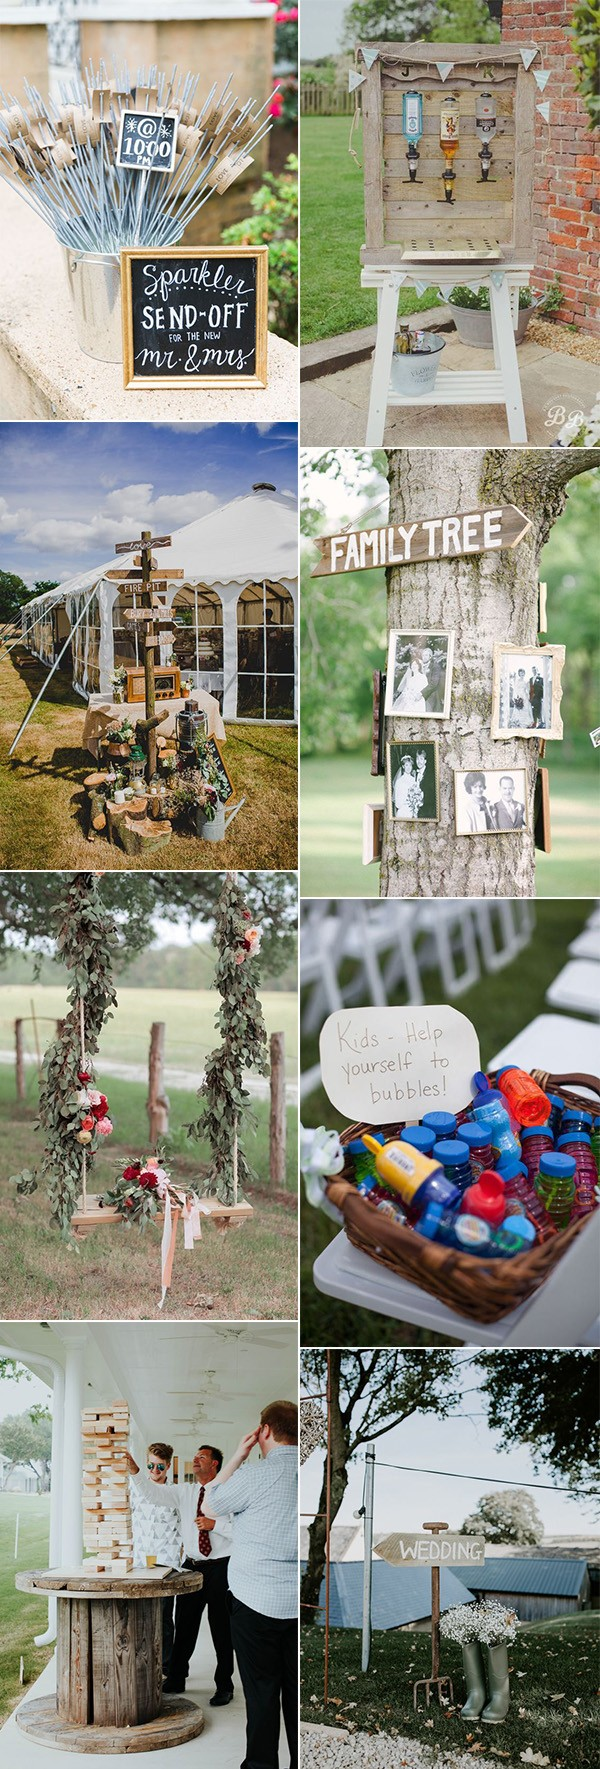 outdoor wedding detail ideas for 2019